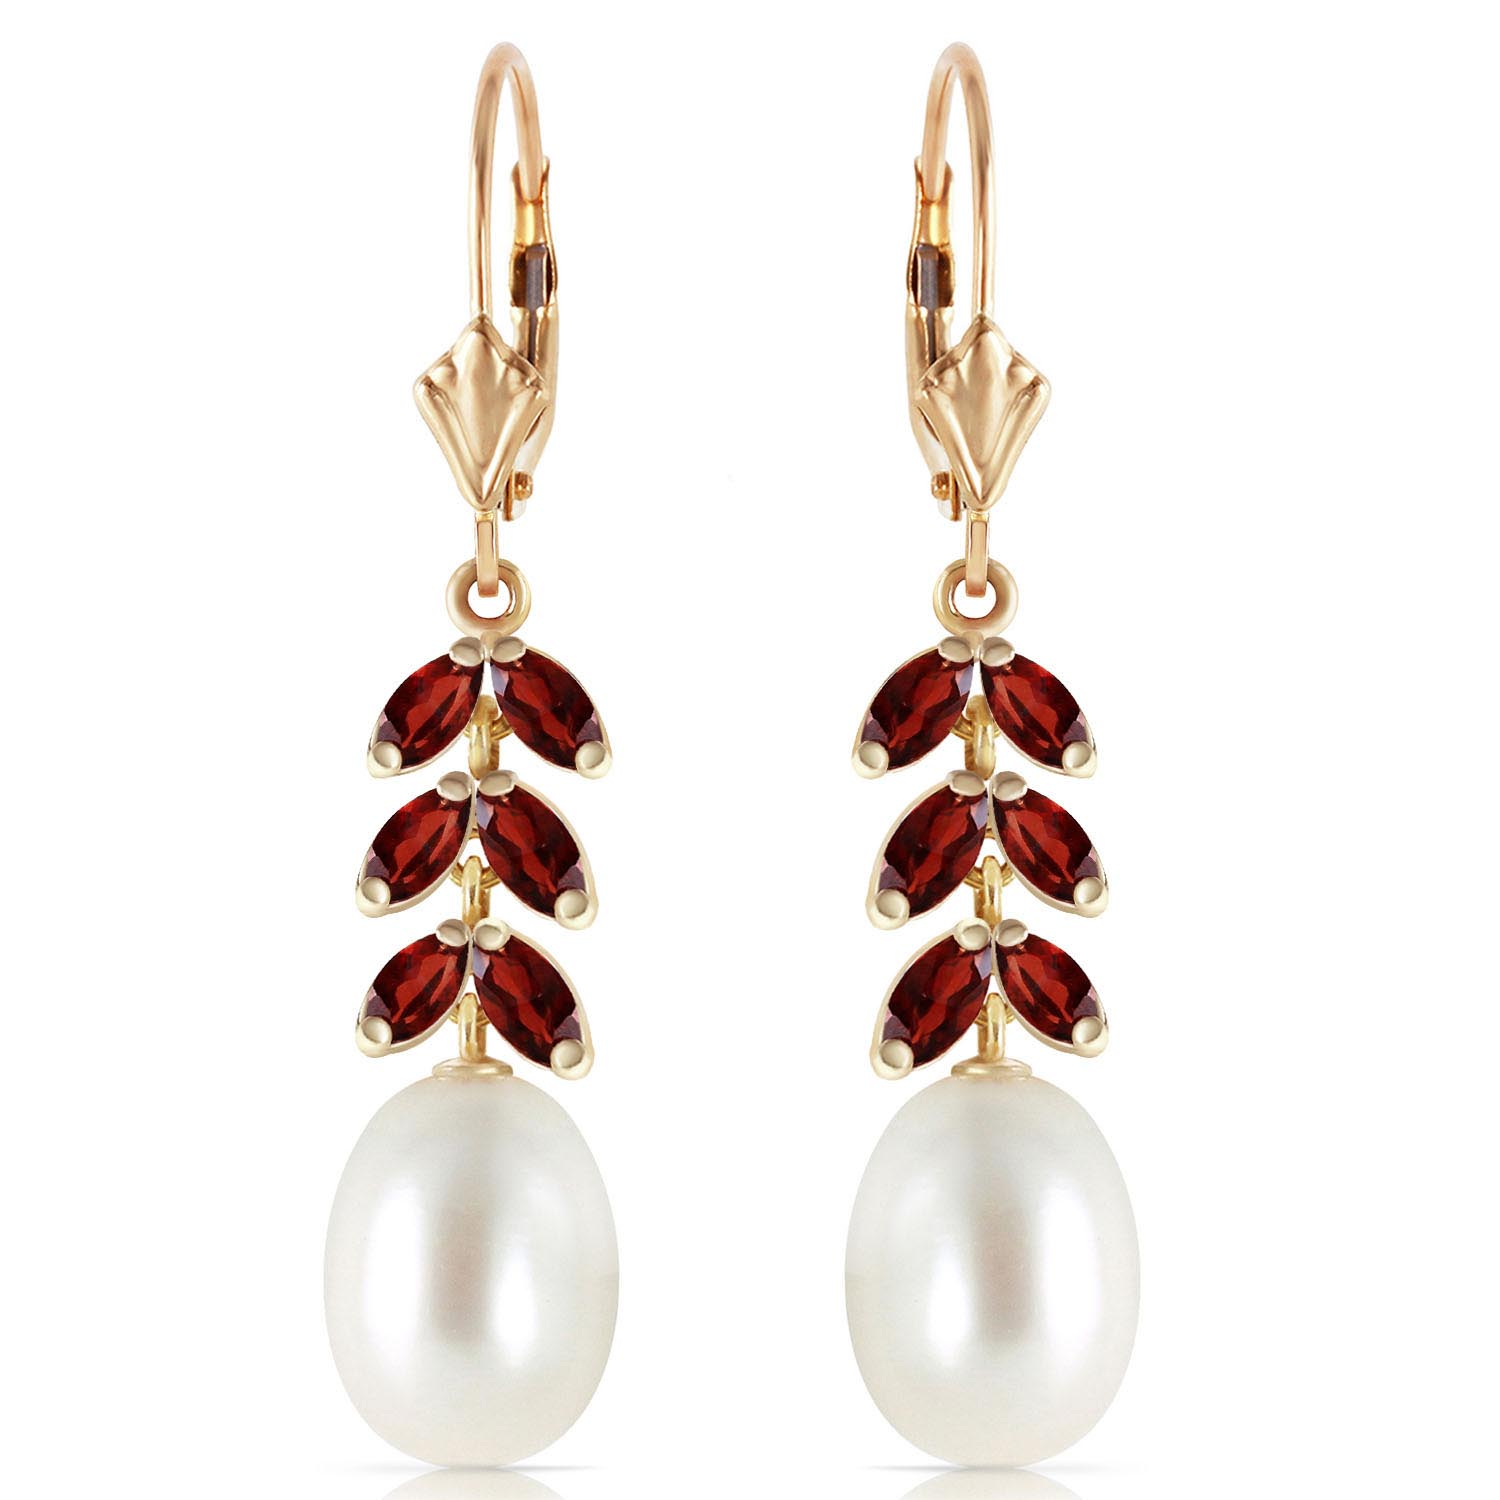 Pearl and Garnet Drop Earrings 9.2ctw in 14K Gold